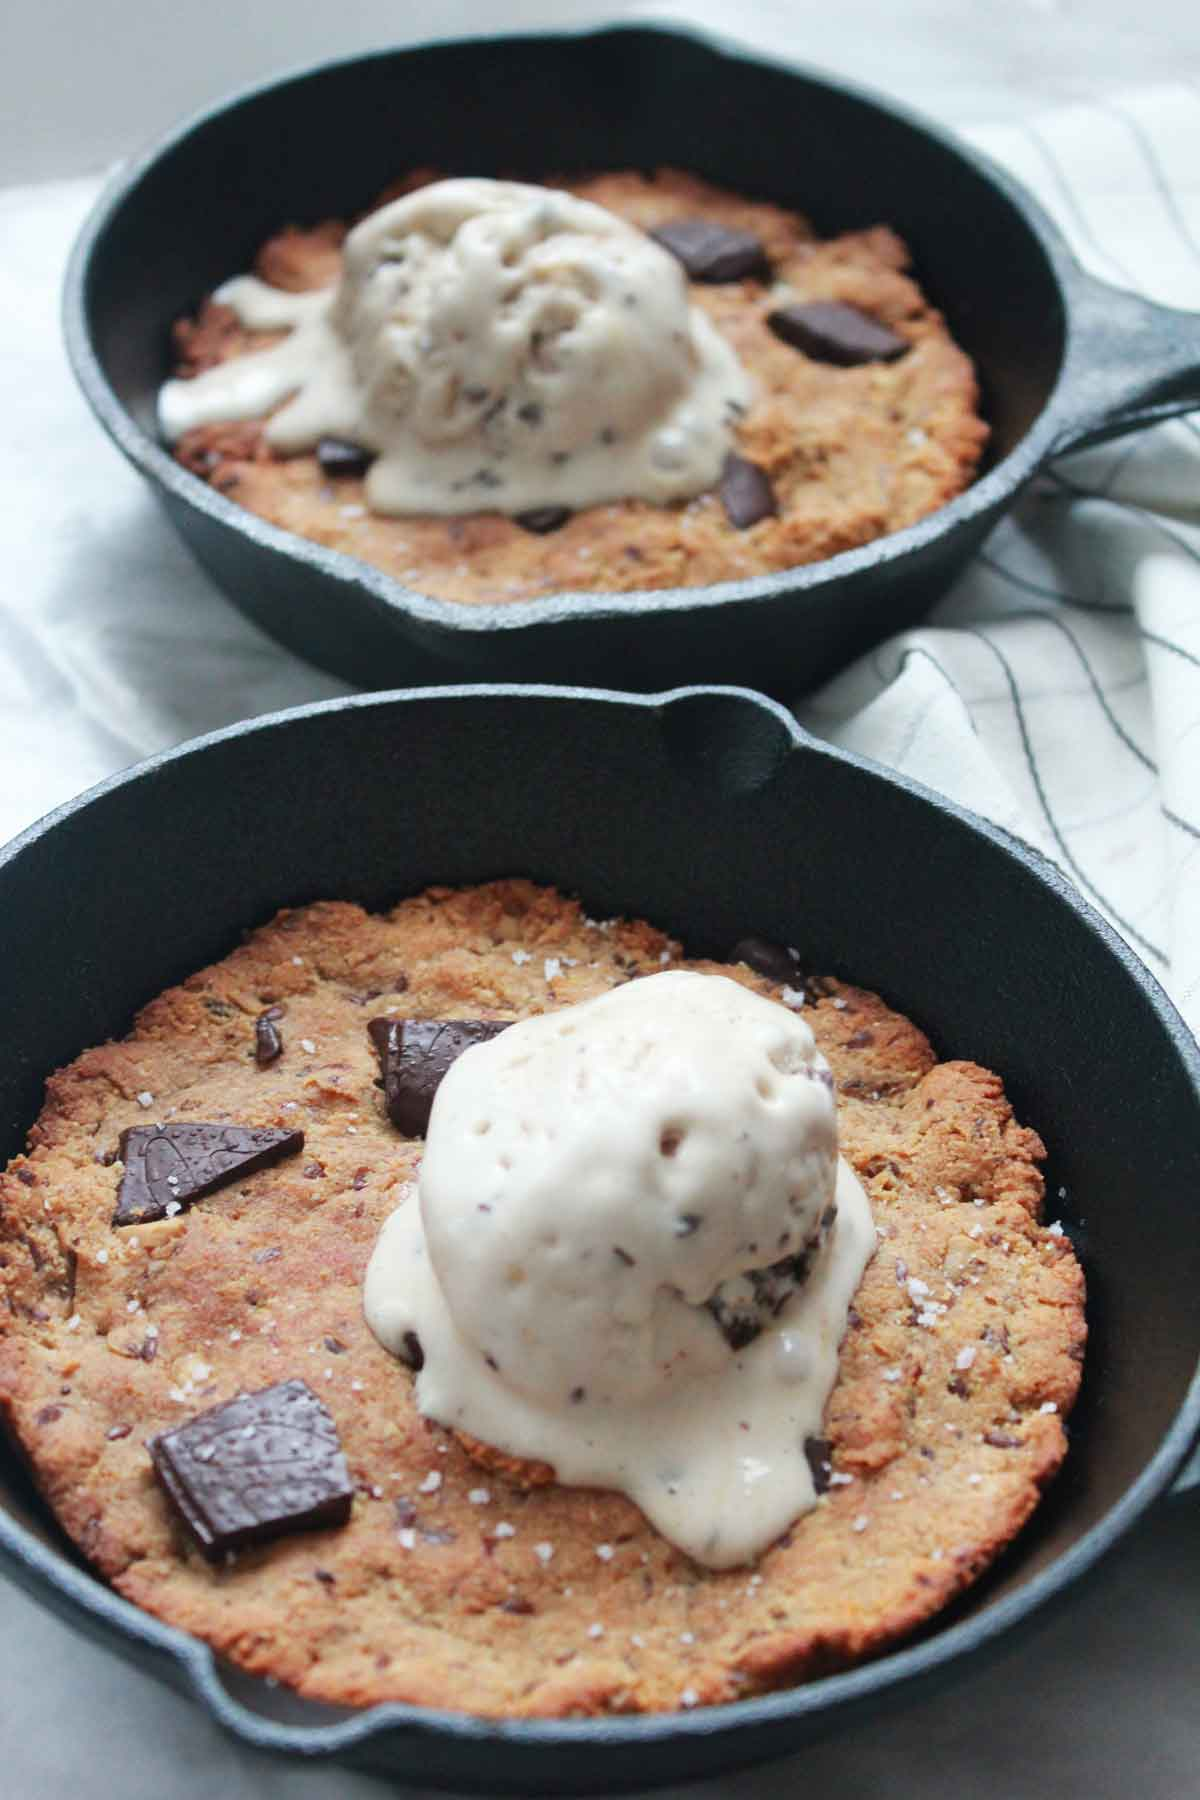 Chocolate Skillet Cookie with MARPHYL Sea Salt